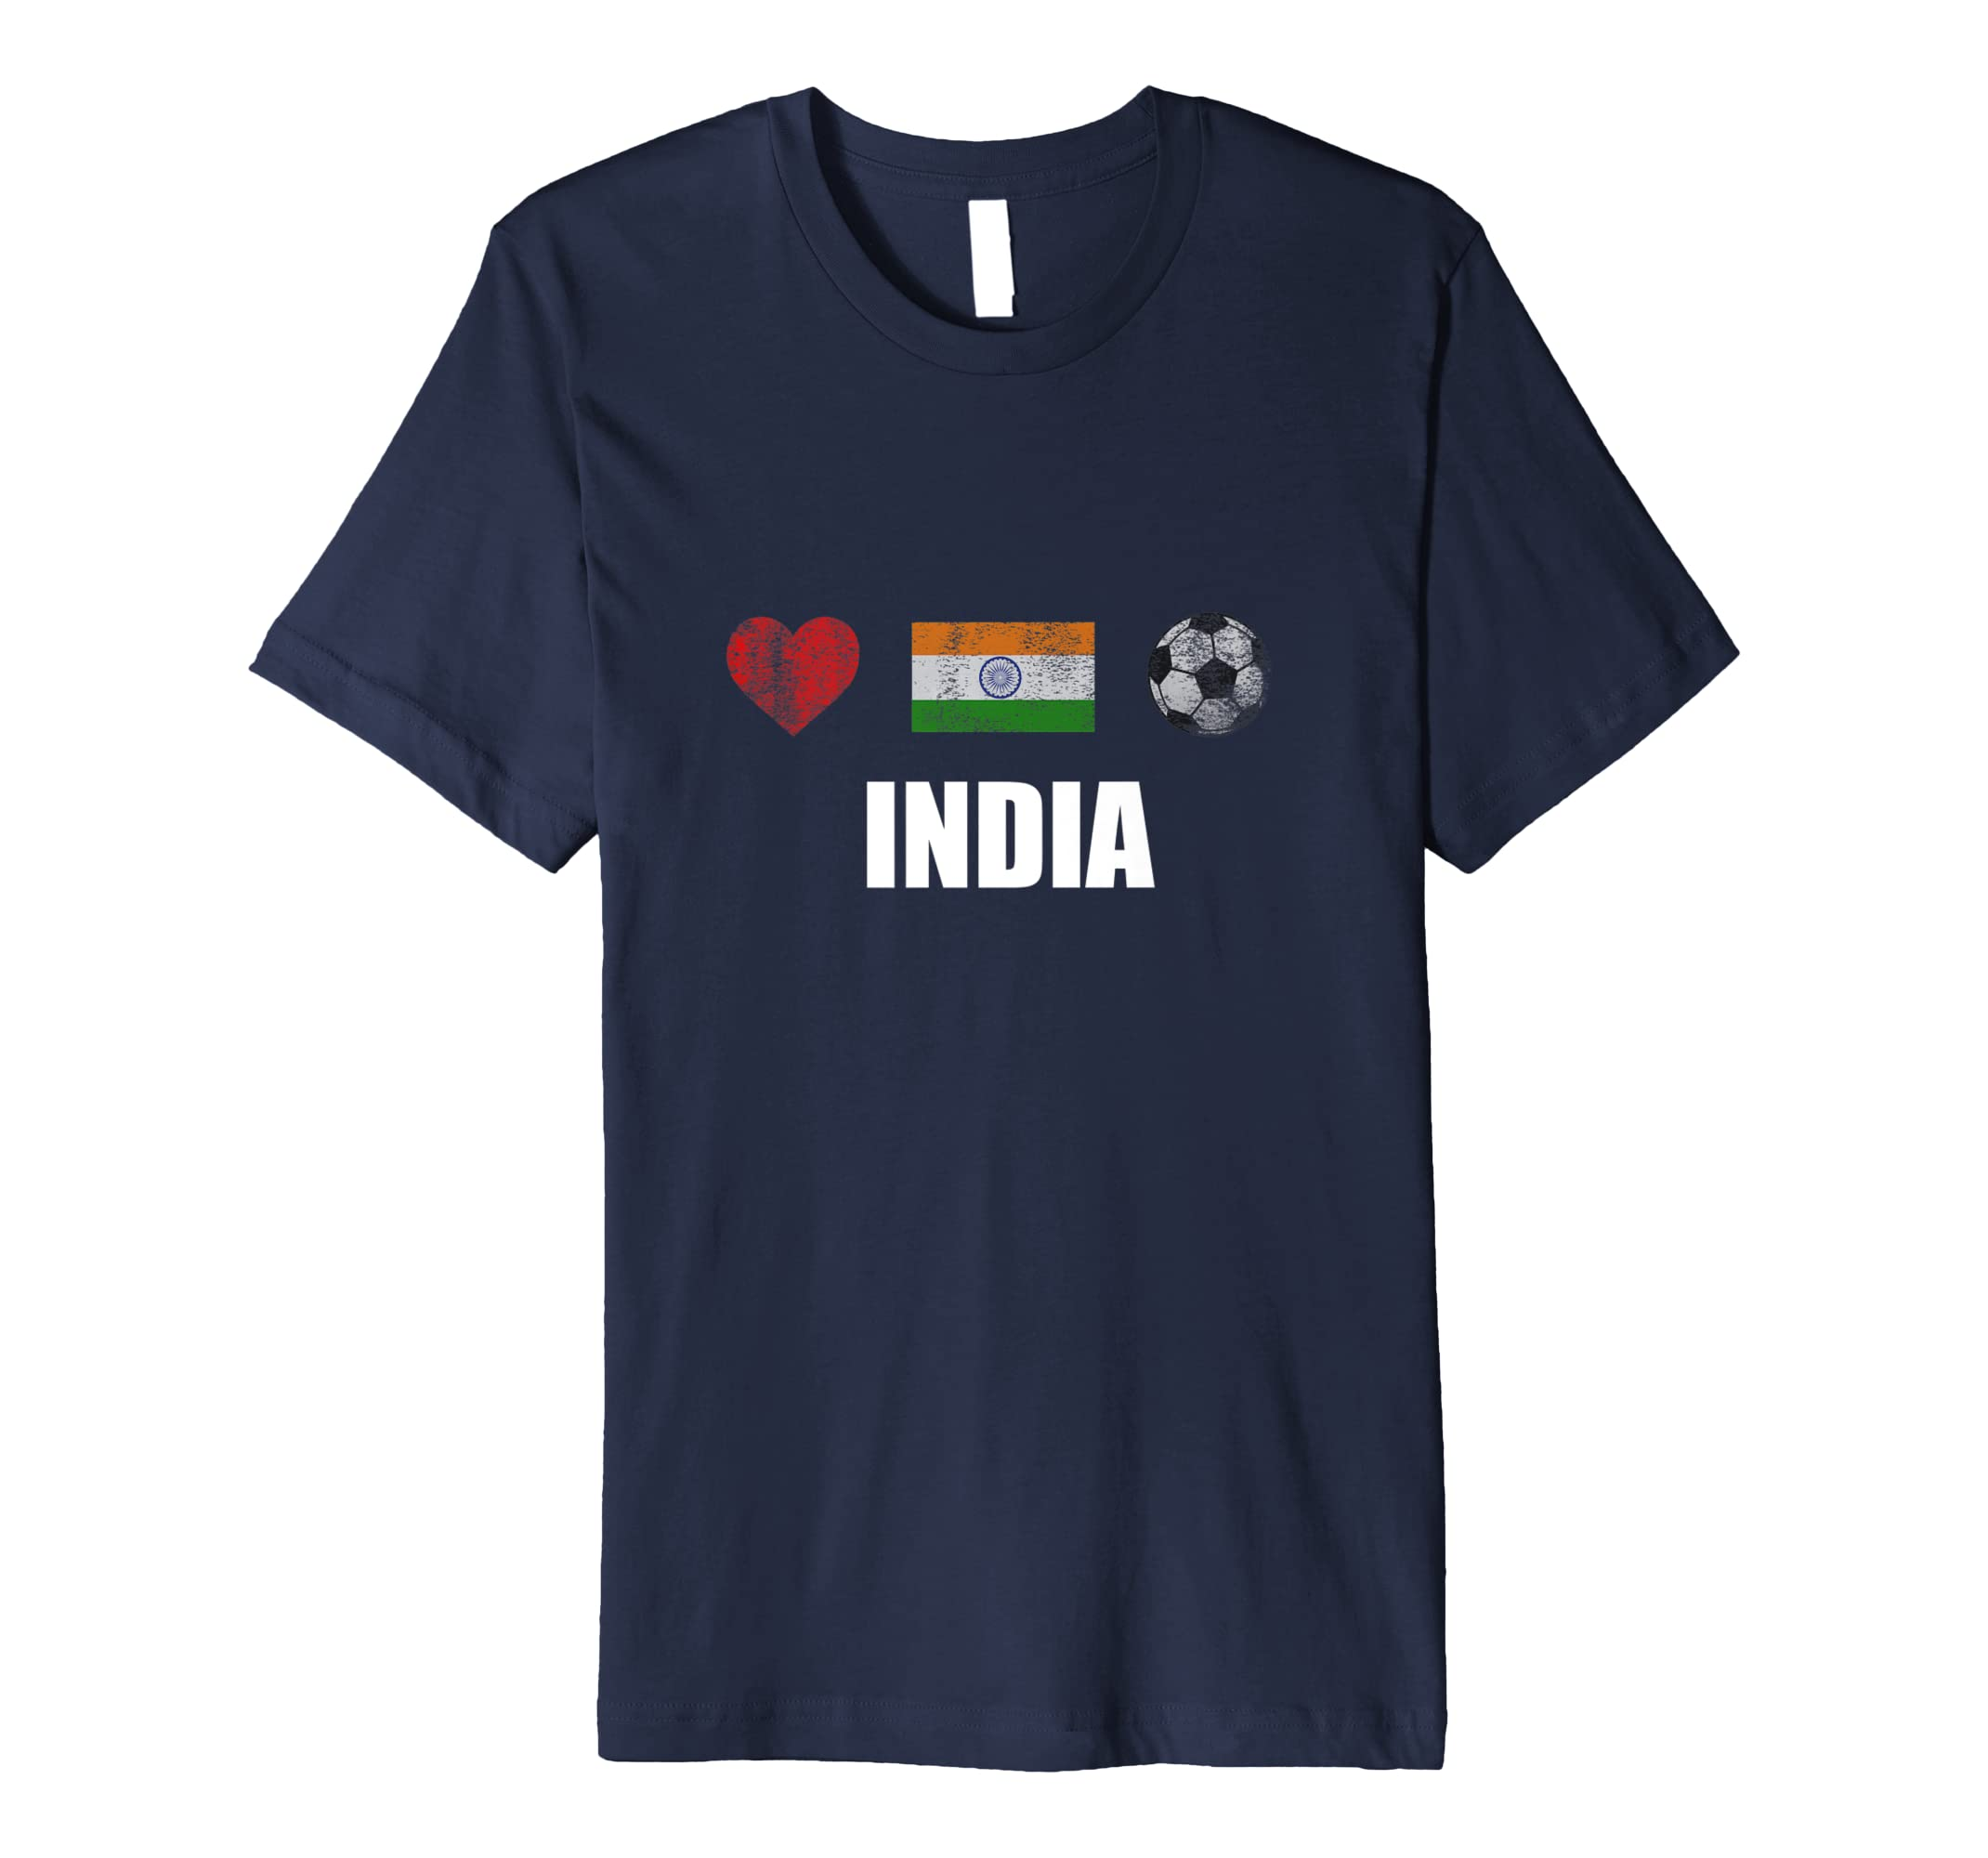 timeless design 2977a 9a67a Football Shirts In India - DREAMWORKS